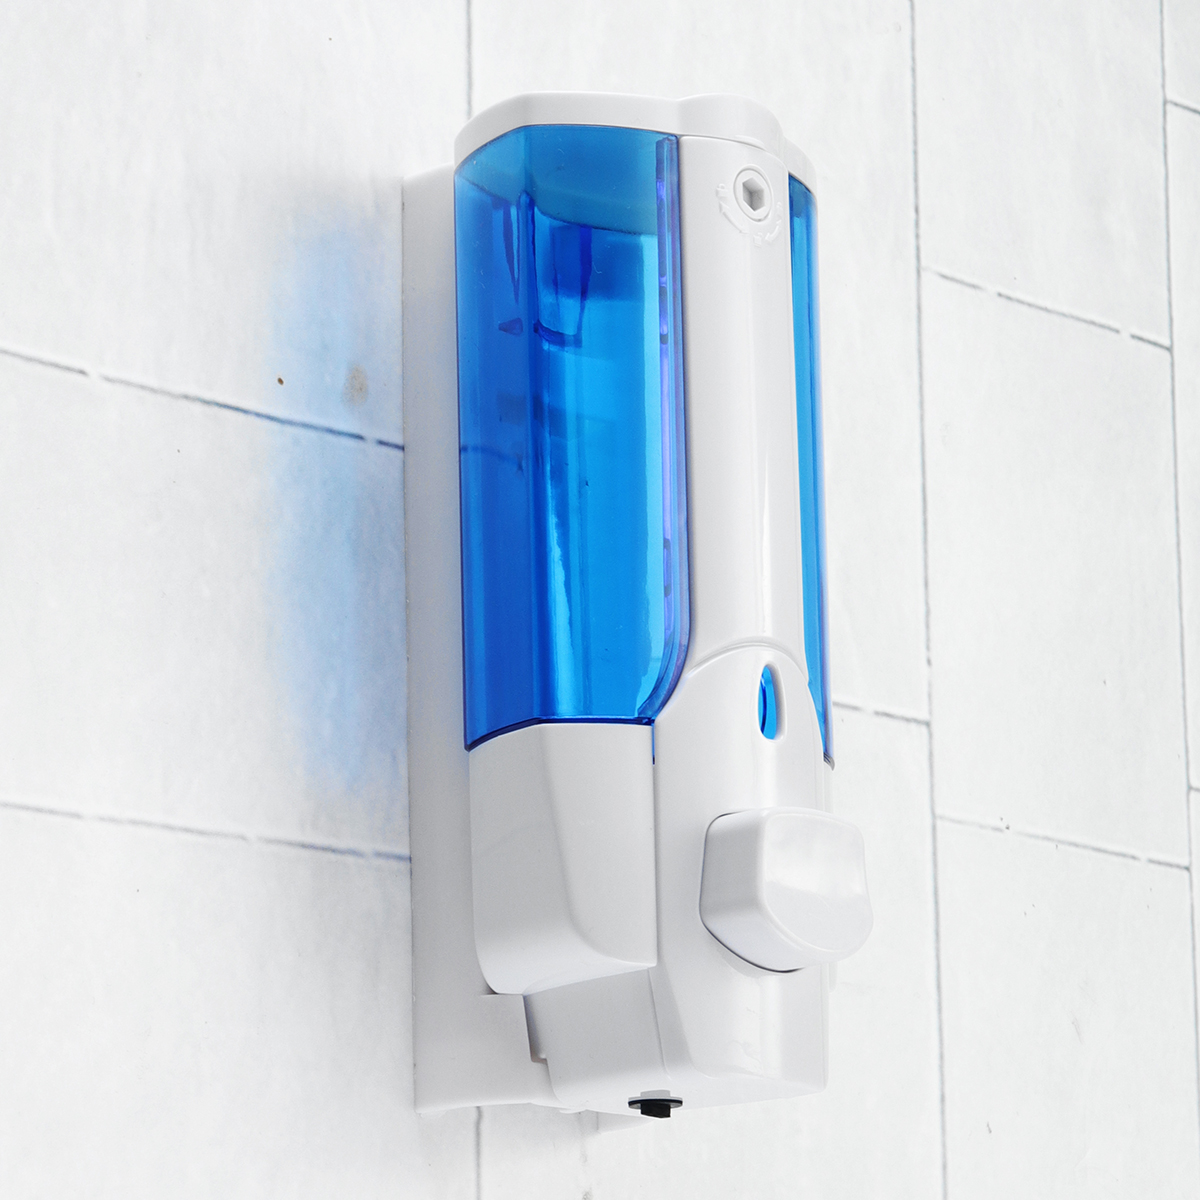 400ml Single/Double Row Shower Soap Dispenser Wall Mounted Liquid Shampoo Plastic Bathroom Accessories Detergent